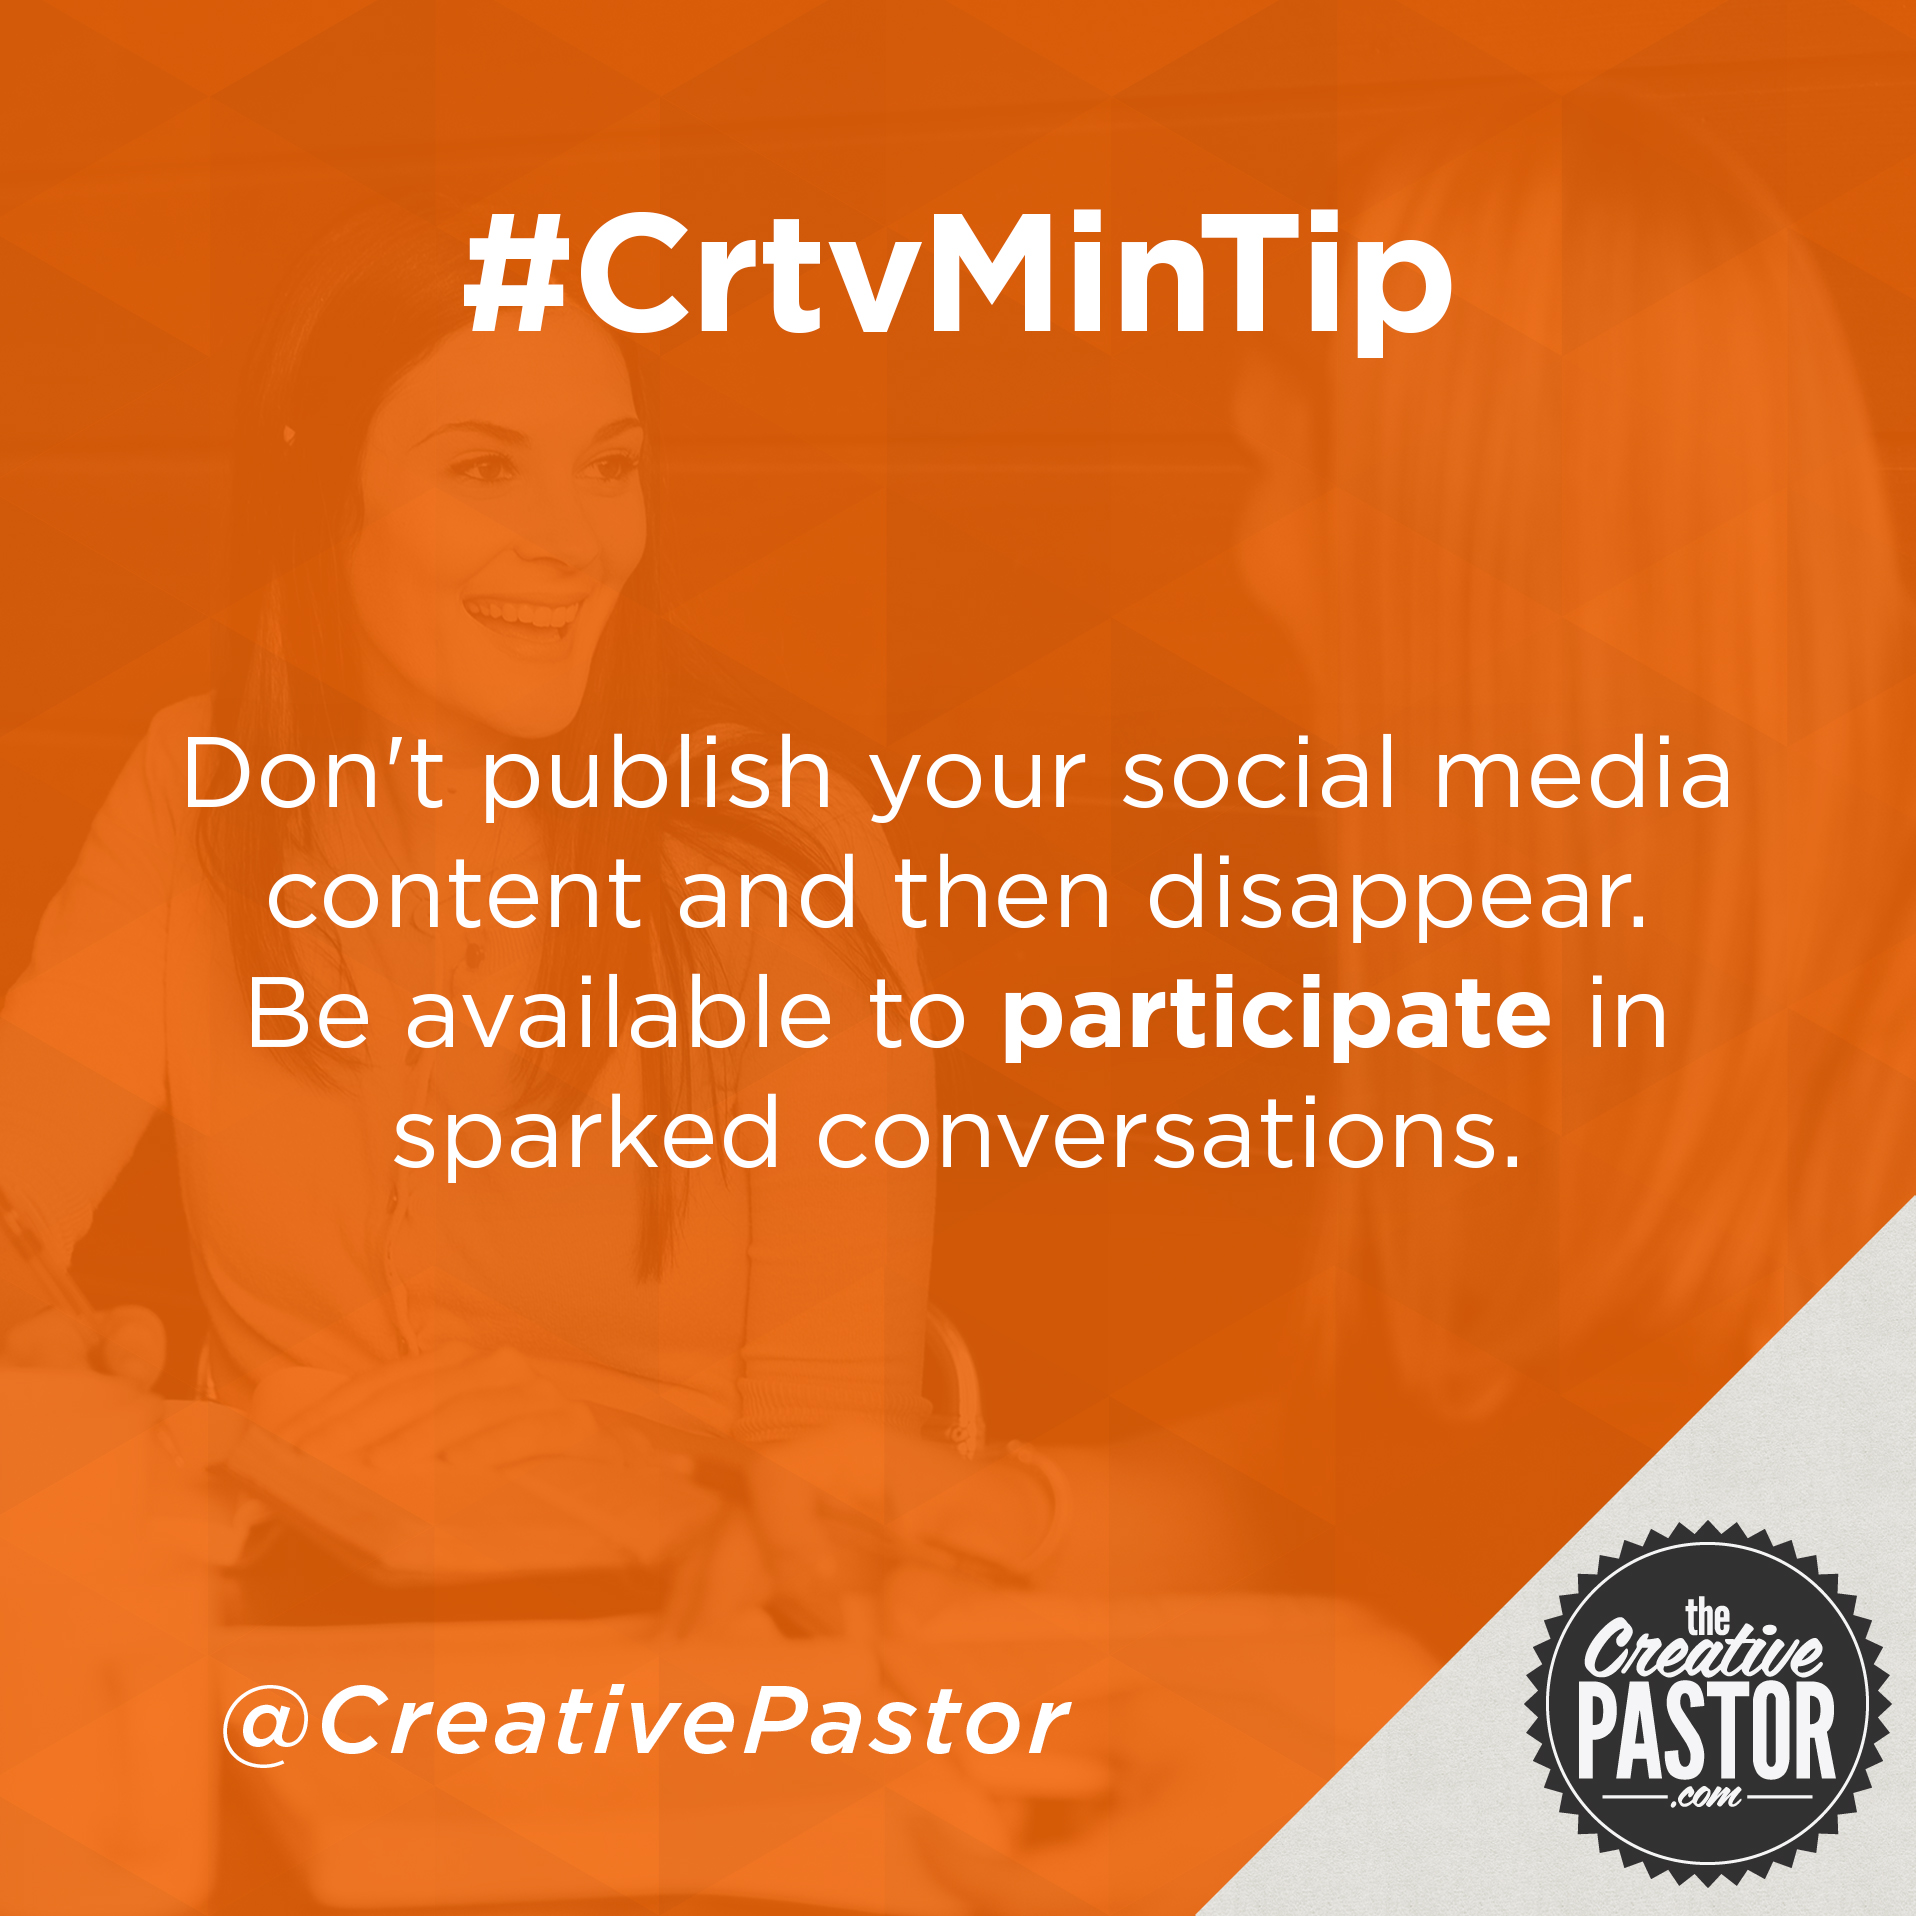 Don't publish your social media content and then disappear. Be available to participate in sparked conversations.